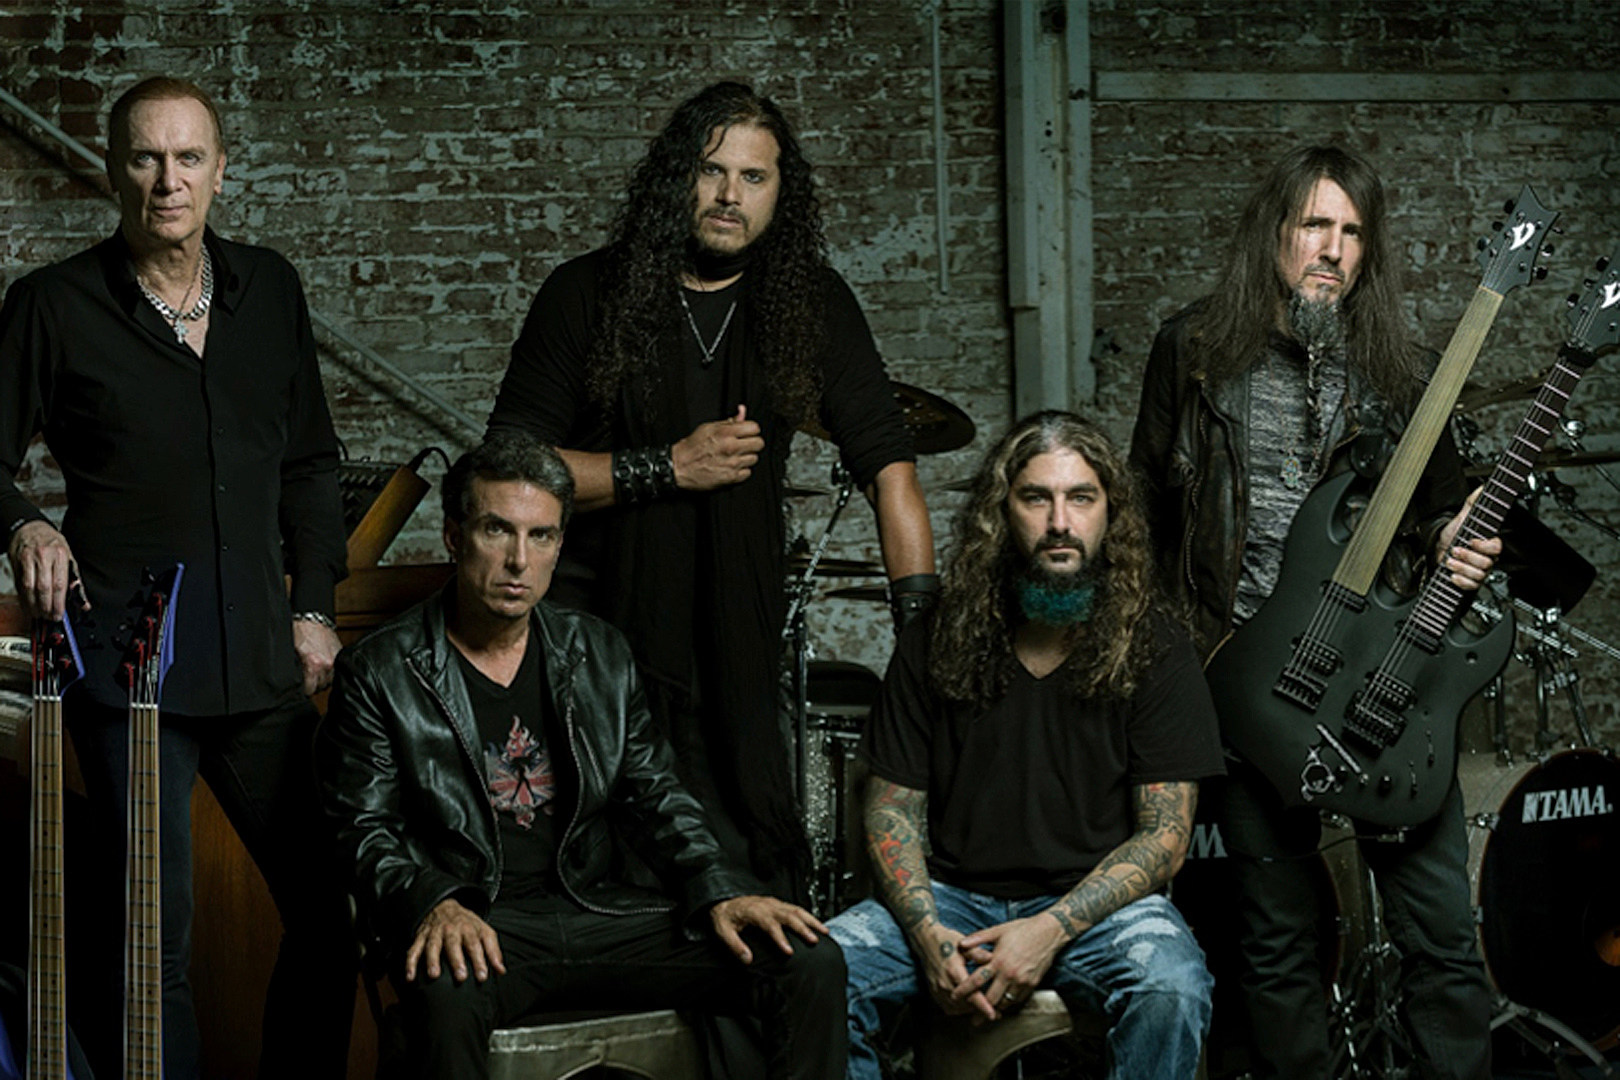 Sons of Apollo's Mike Portnoy + Derek Sherinian: We Transcend Dream Theater Comparison, Find Beauty in the 'Art of Strategic Wankery' [Interview]